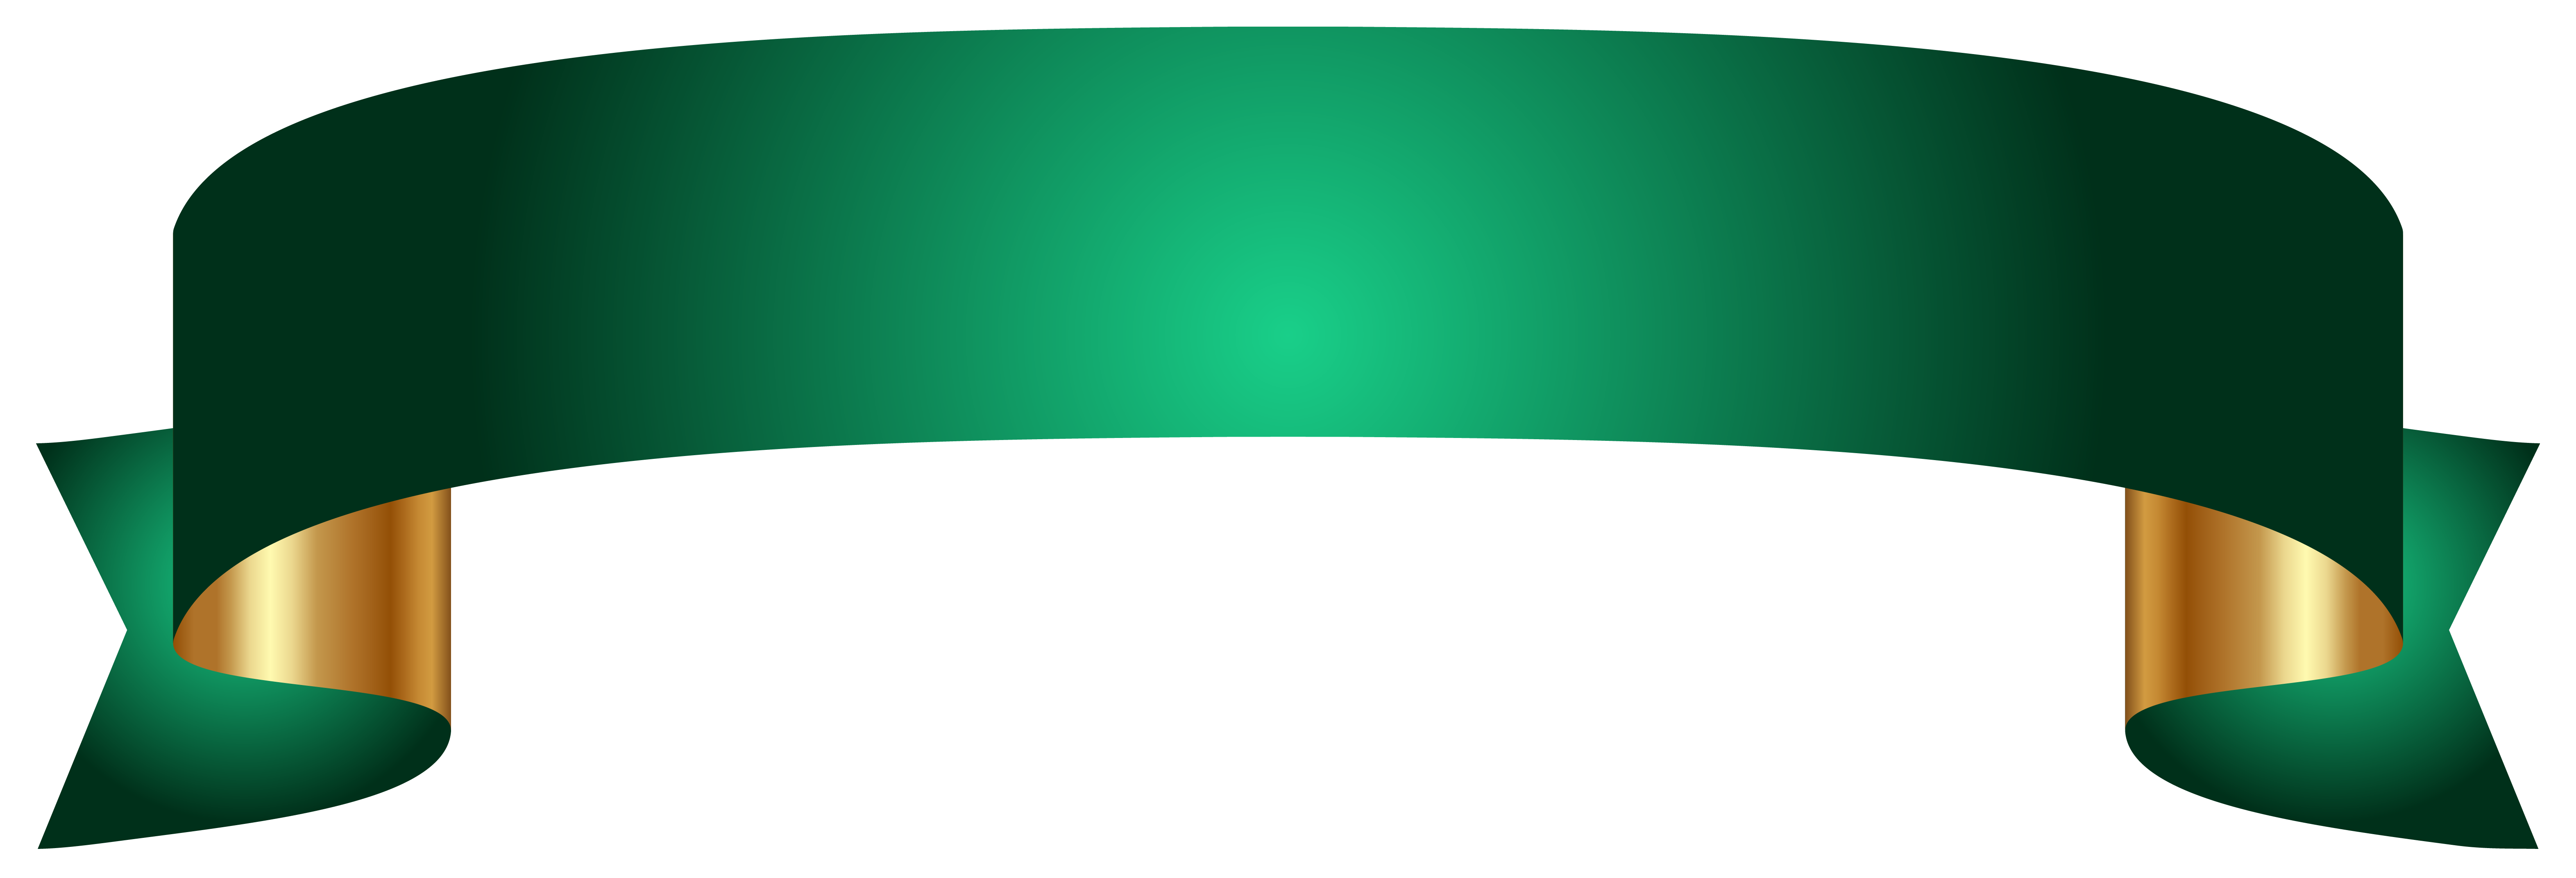 Transparent clip art image. Banner png green picture black and white